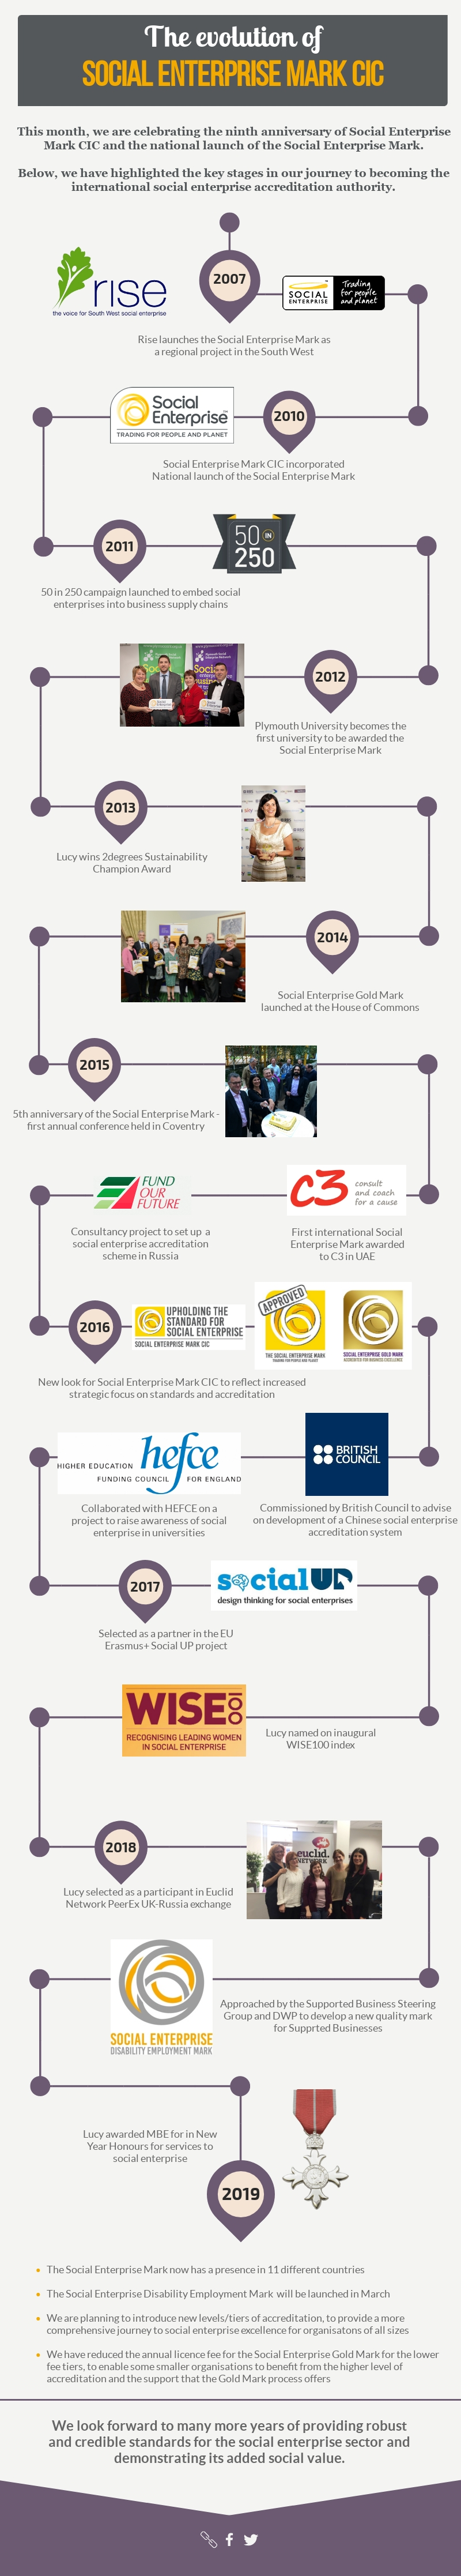 Social-Enterprise-Mark-CIC-timeline-